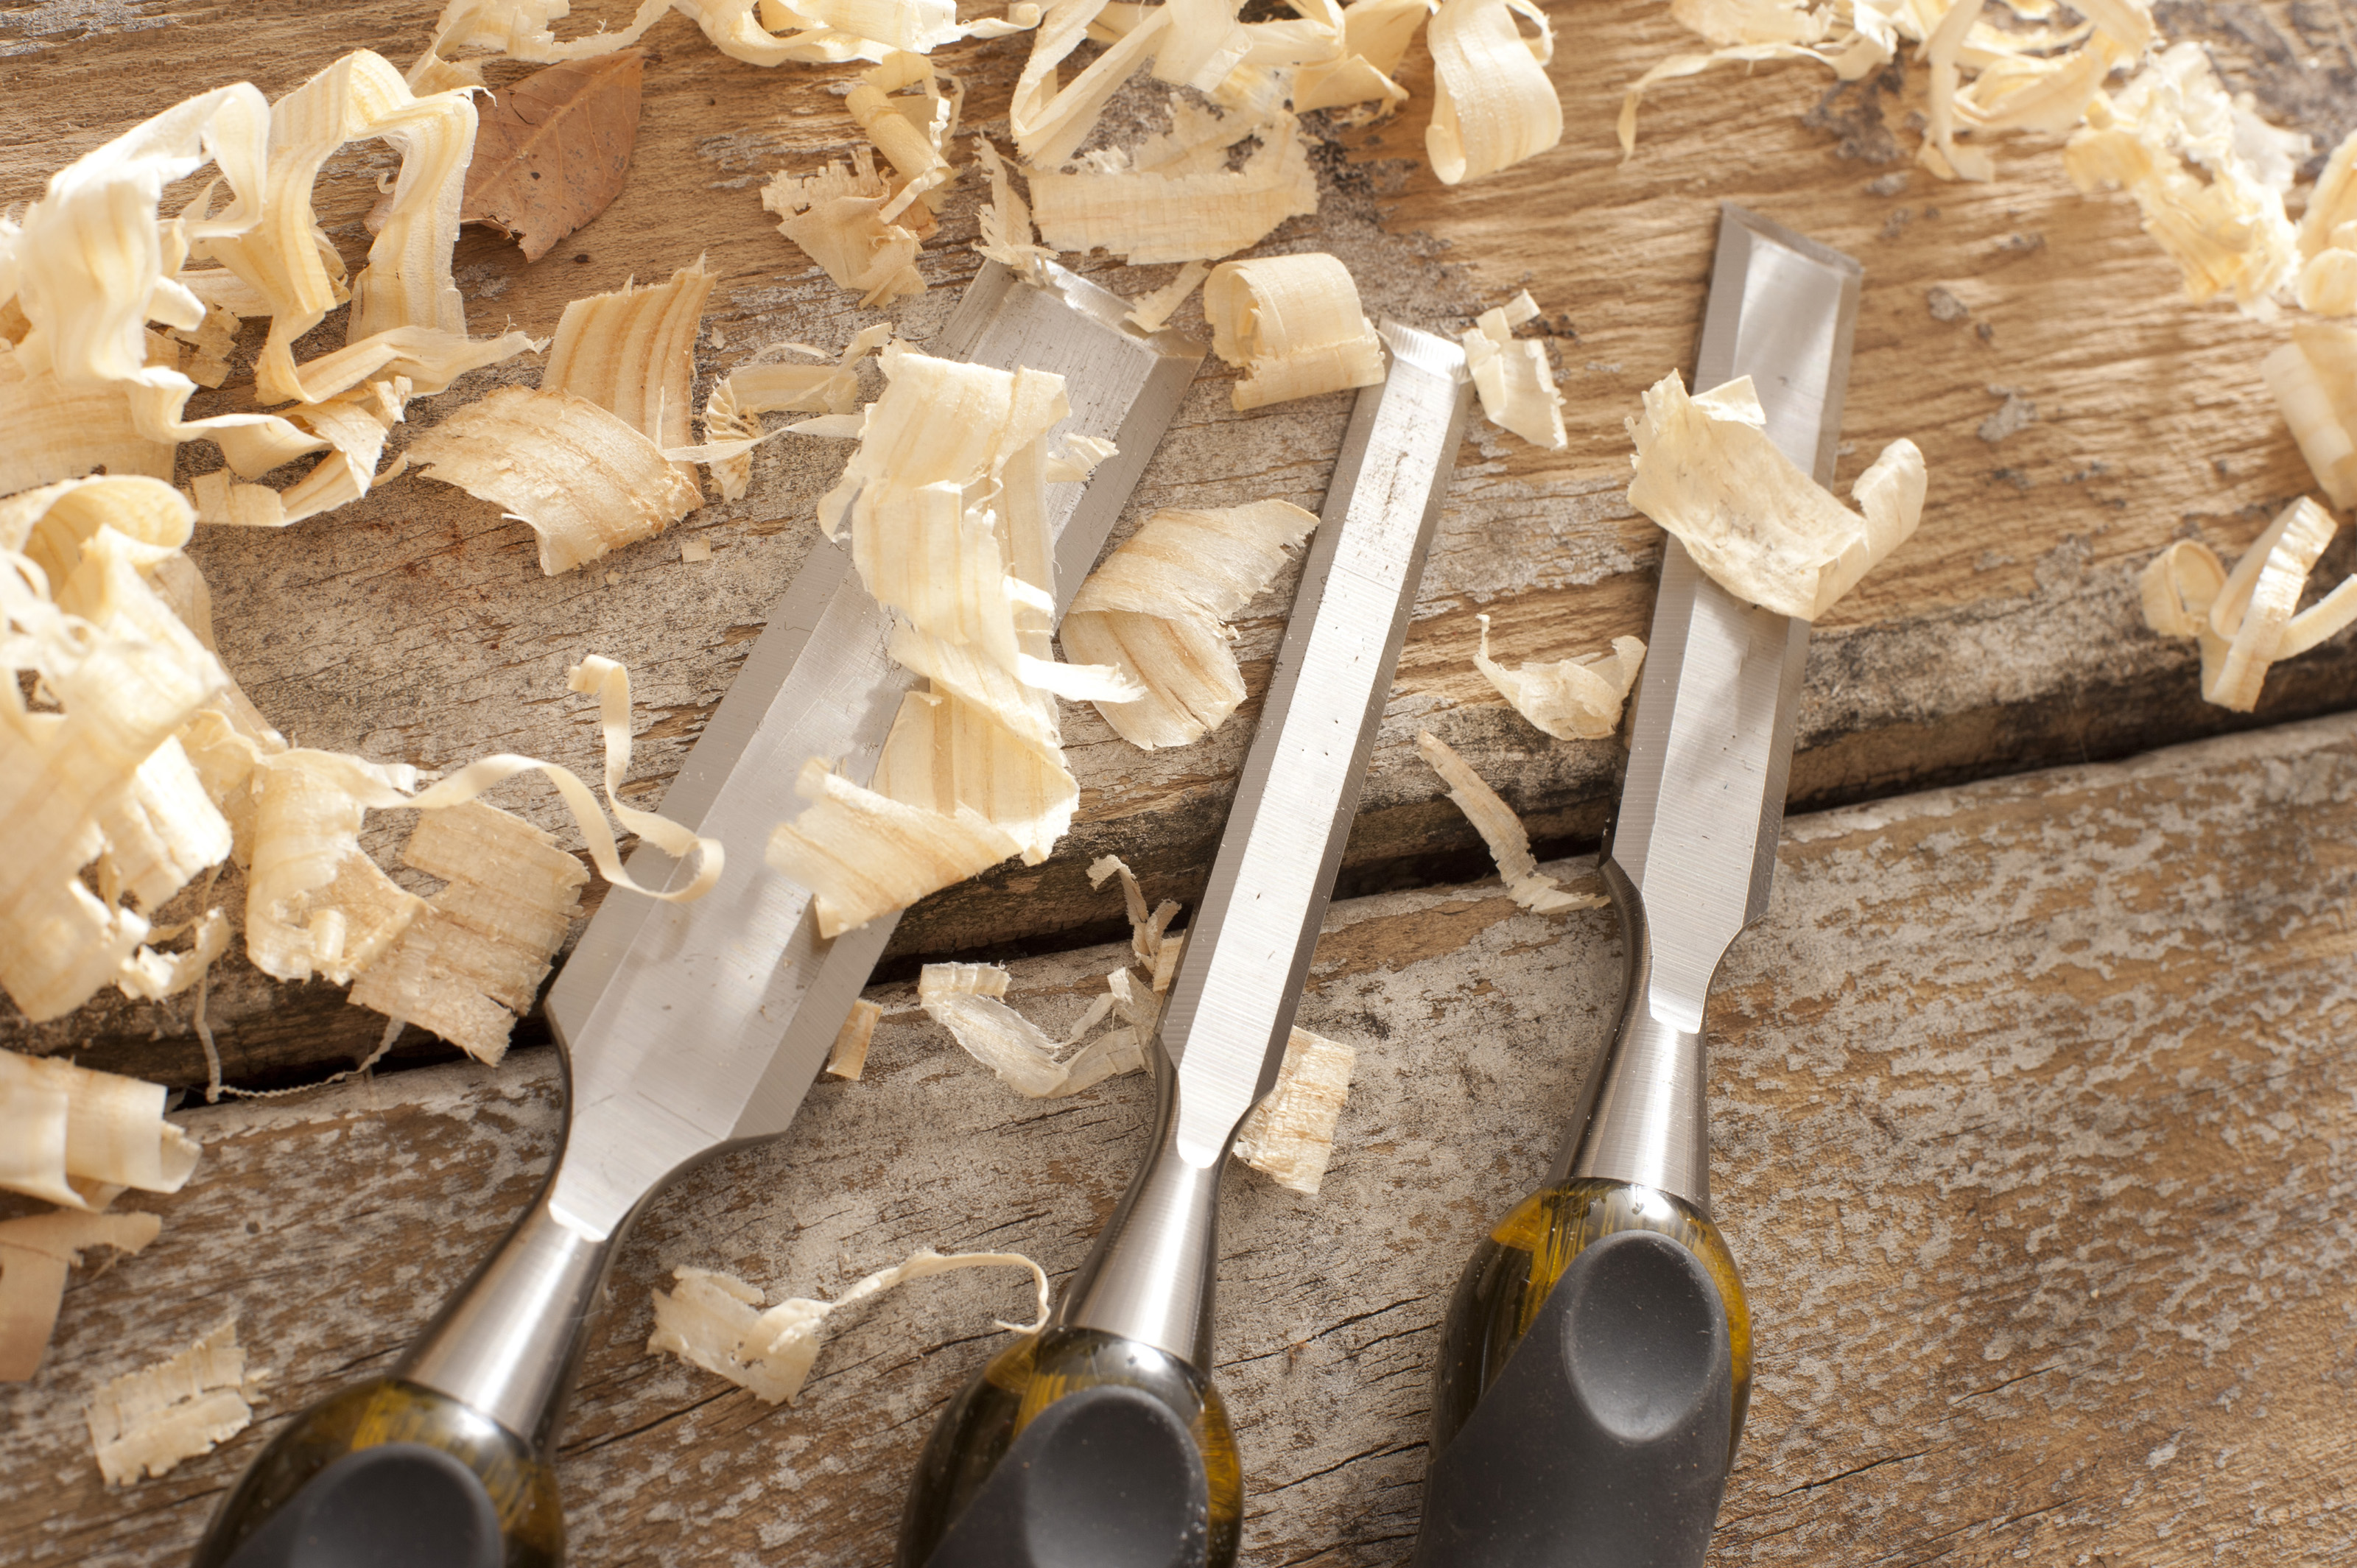 Free image of Wood Chisels Surrounded by Wood Shavings